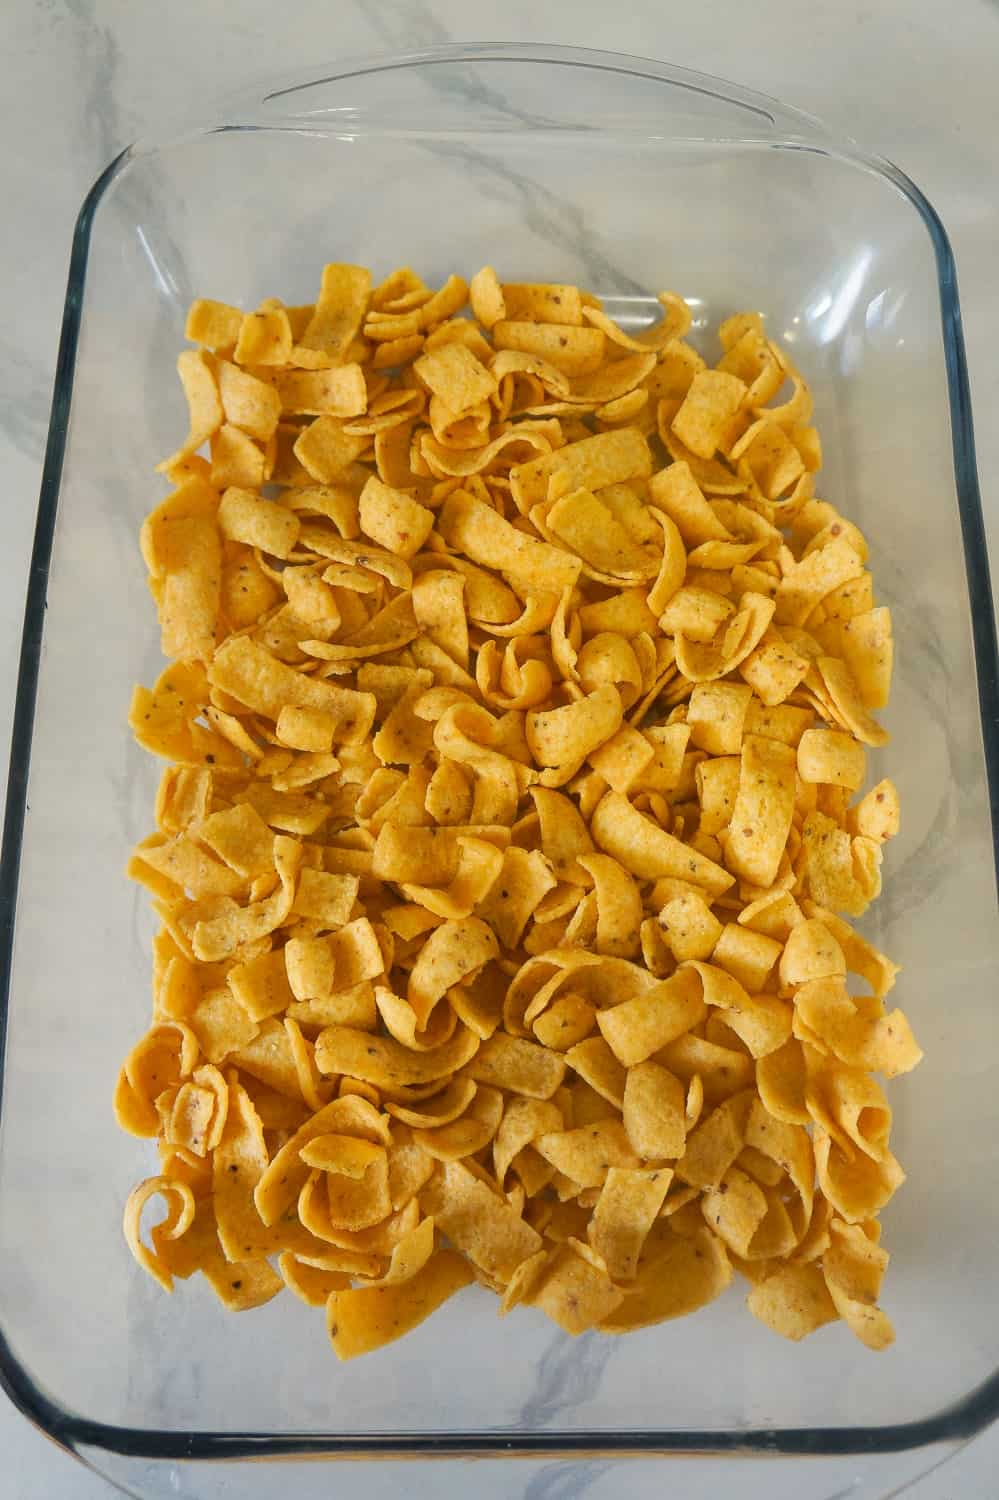 corn chips in the bottom of a baking dish